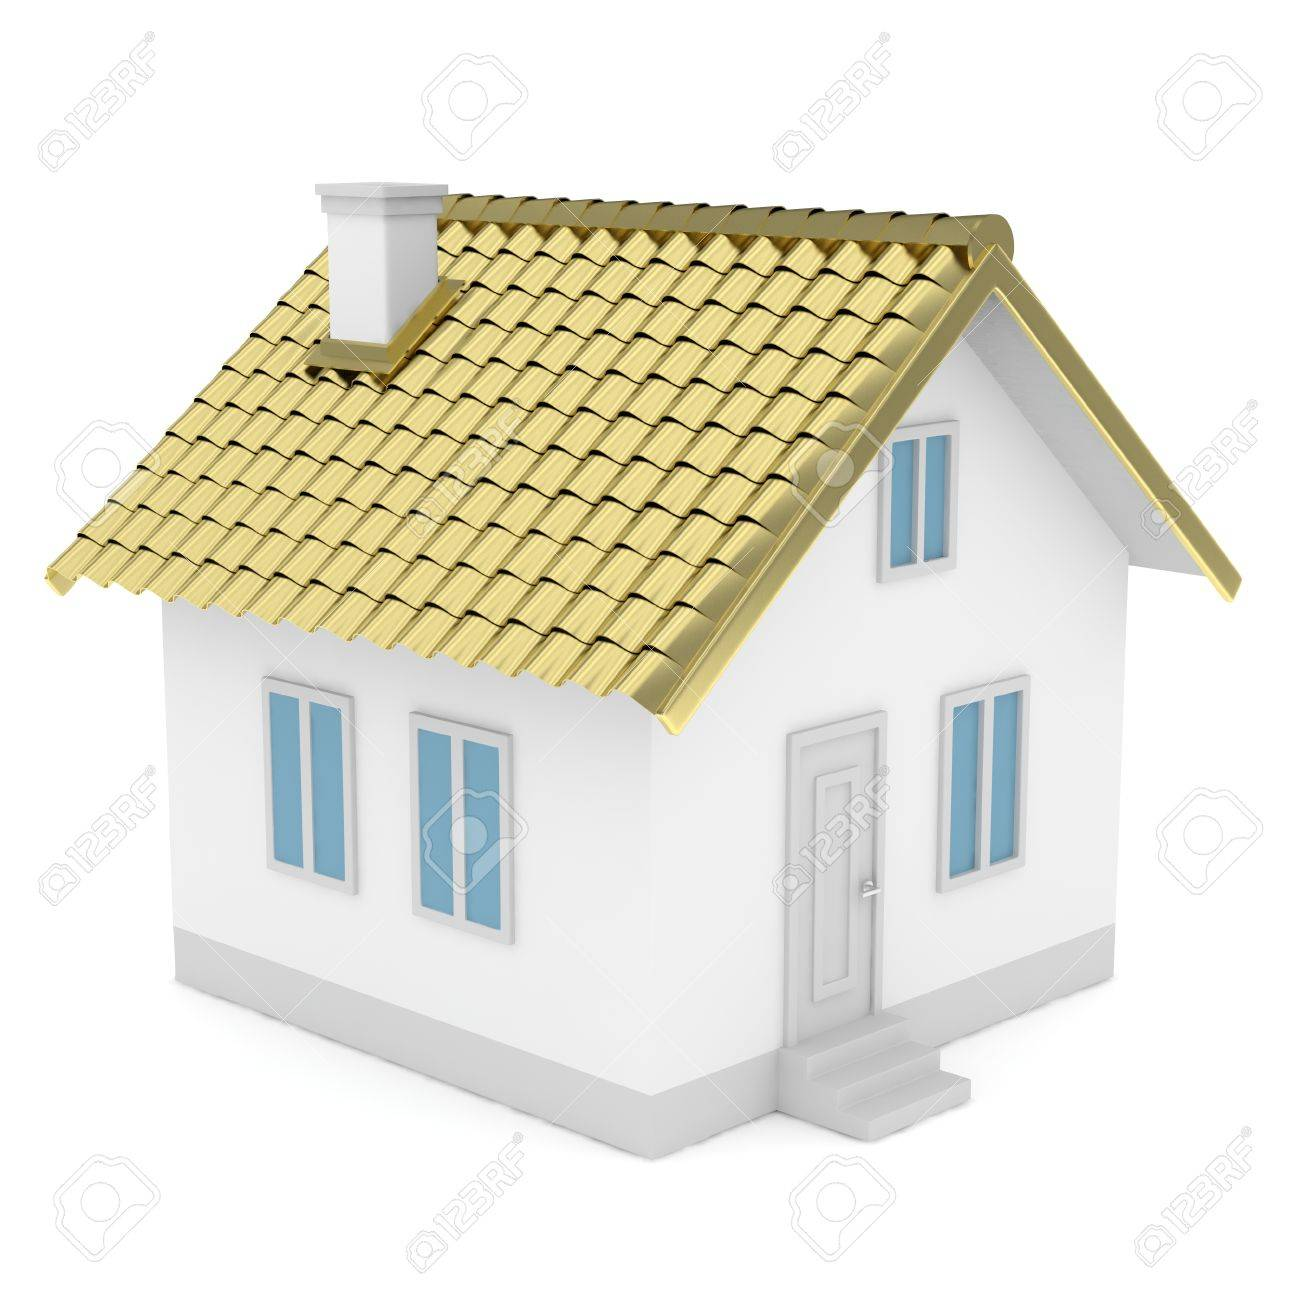 Einfaches Haus Stock Photo